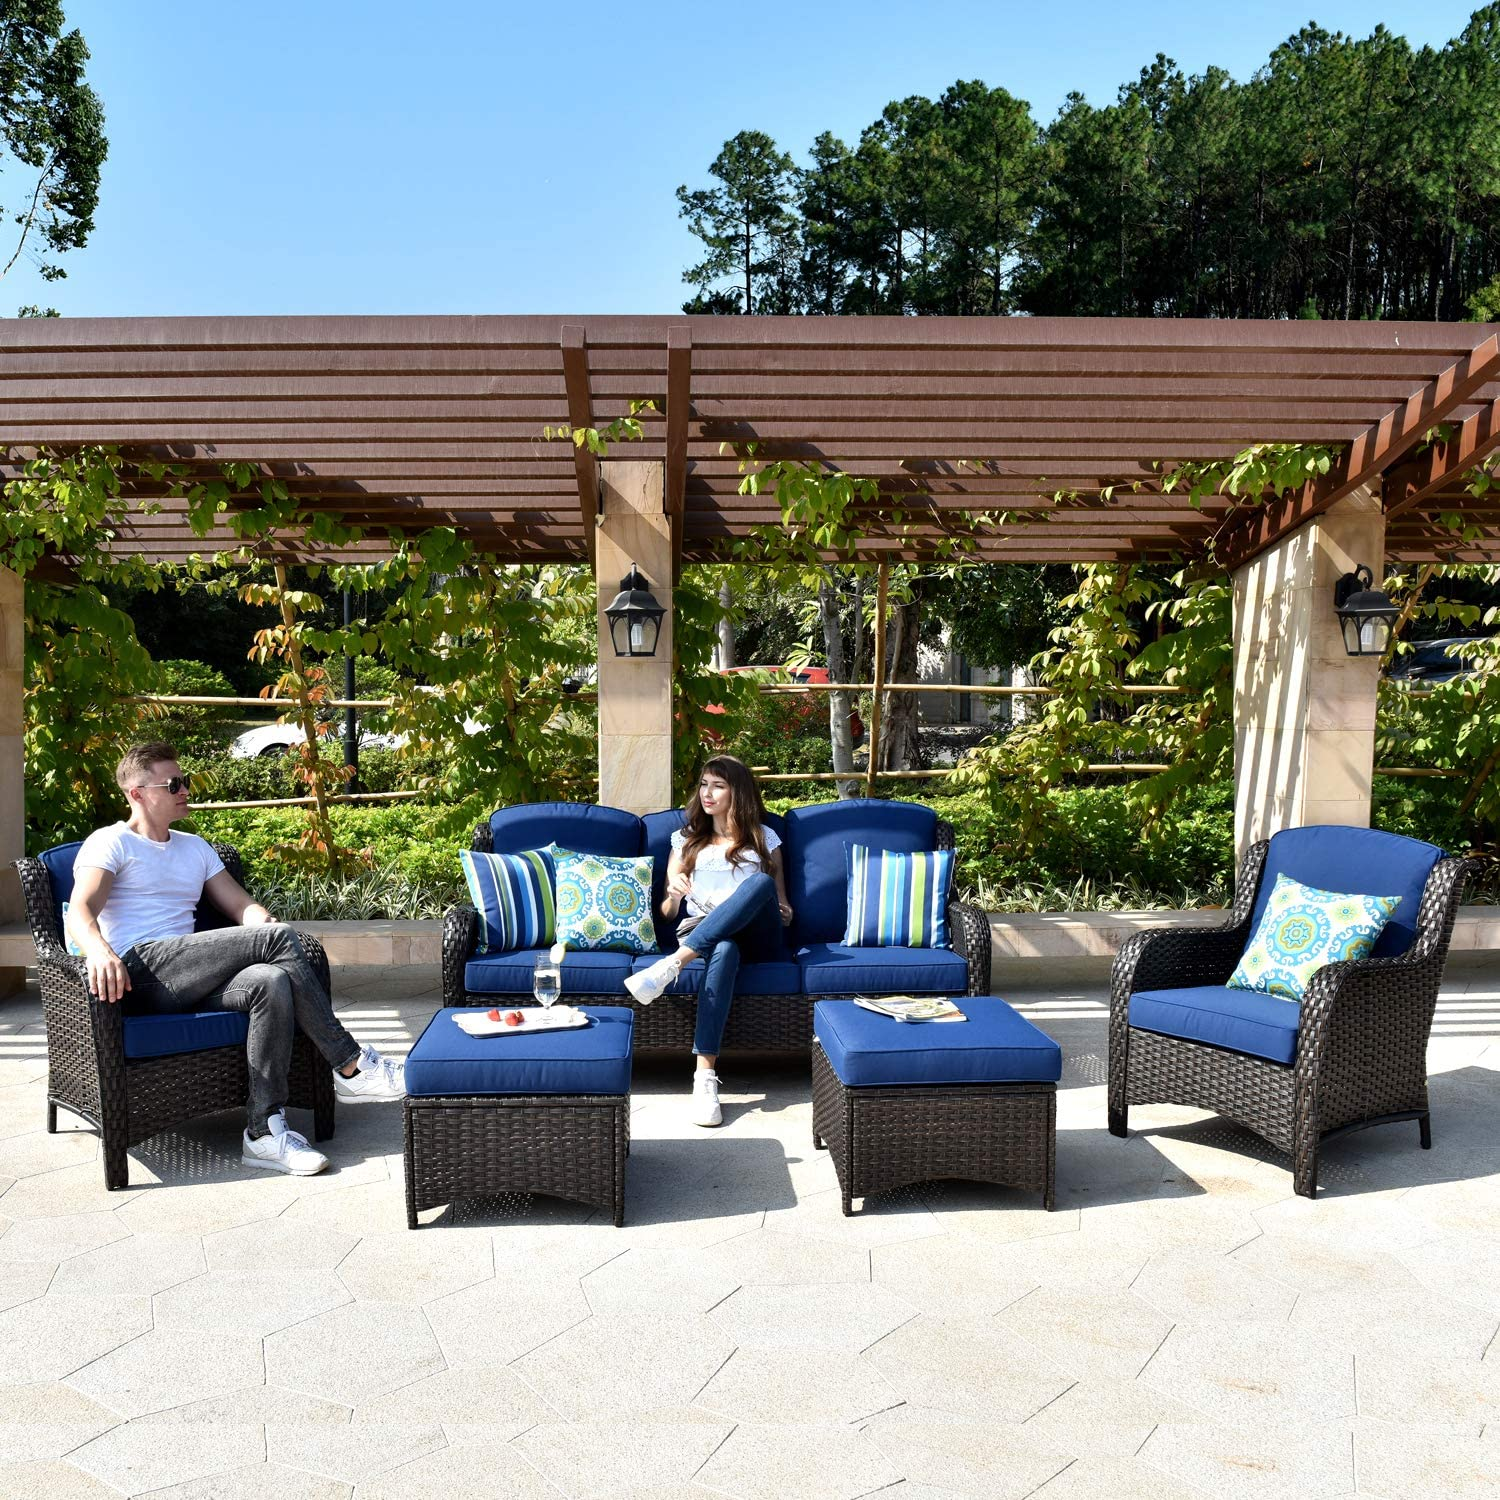 XIZZI Patio Furniture Sets Clearance,Outdoor Furniture,All Weather Wicker Patio Set with High Back Sofa(5PCS, Navy Blue)